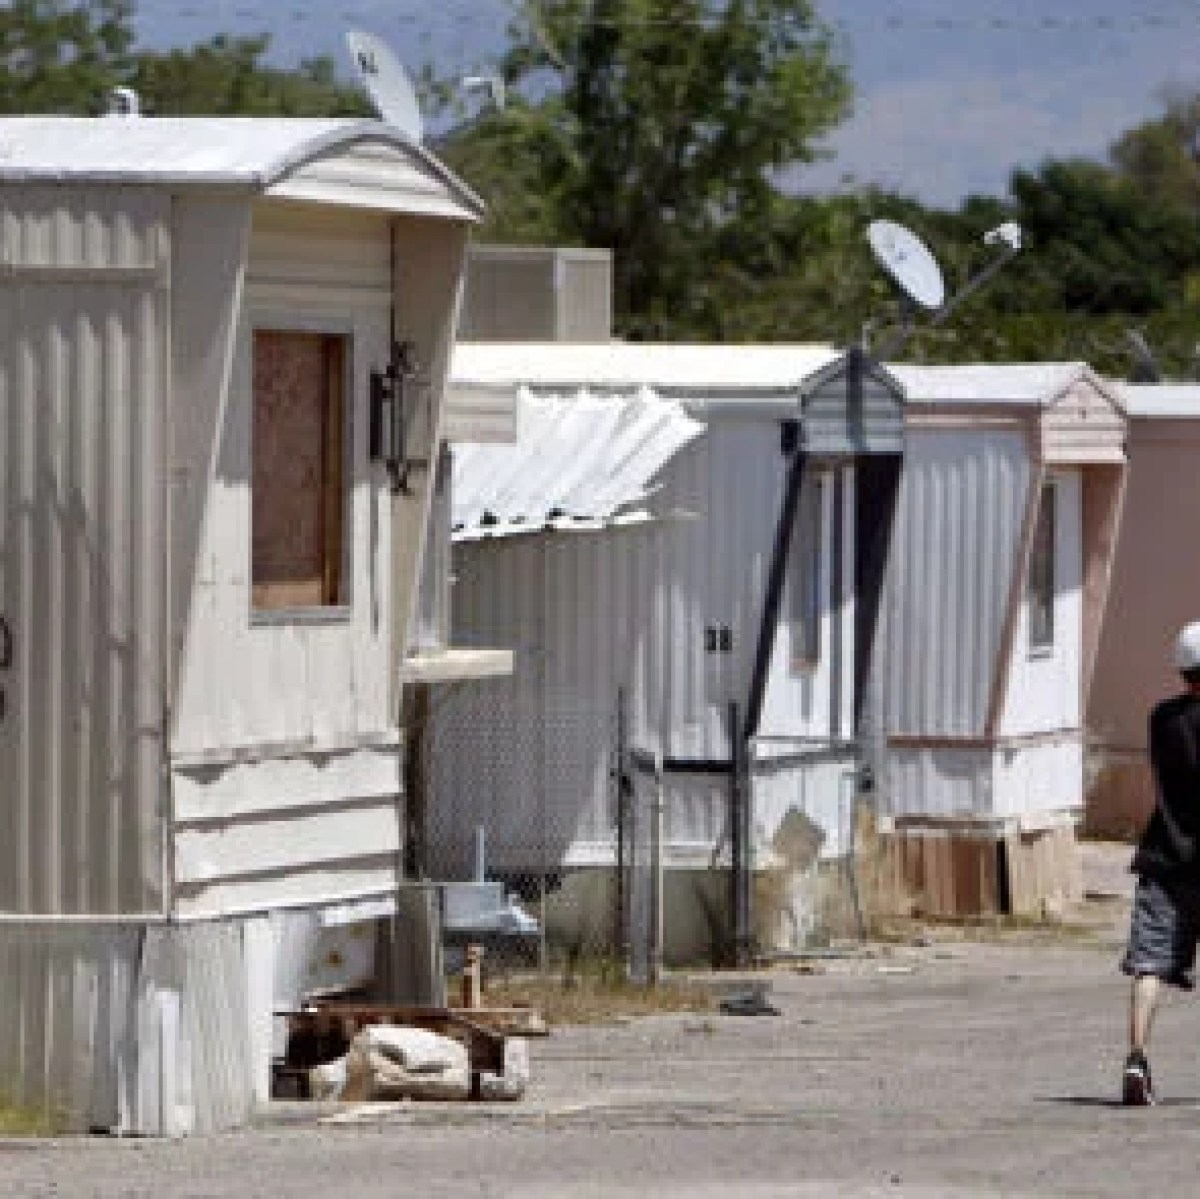 hight resolution of new pima county regulations require proof old mobile homes are safe